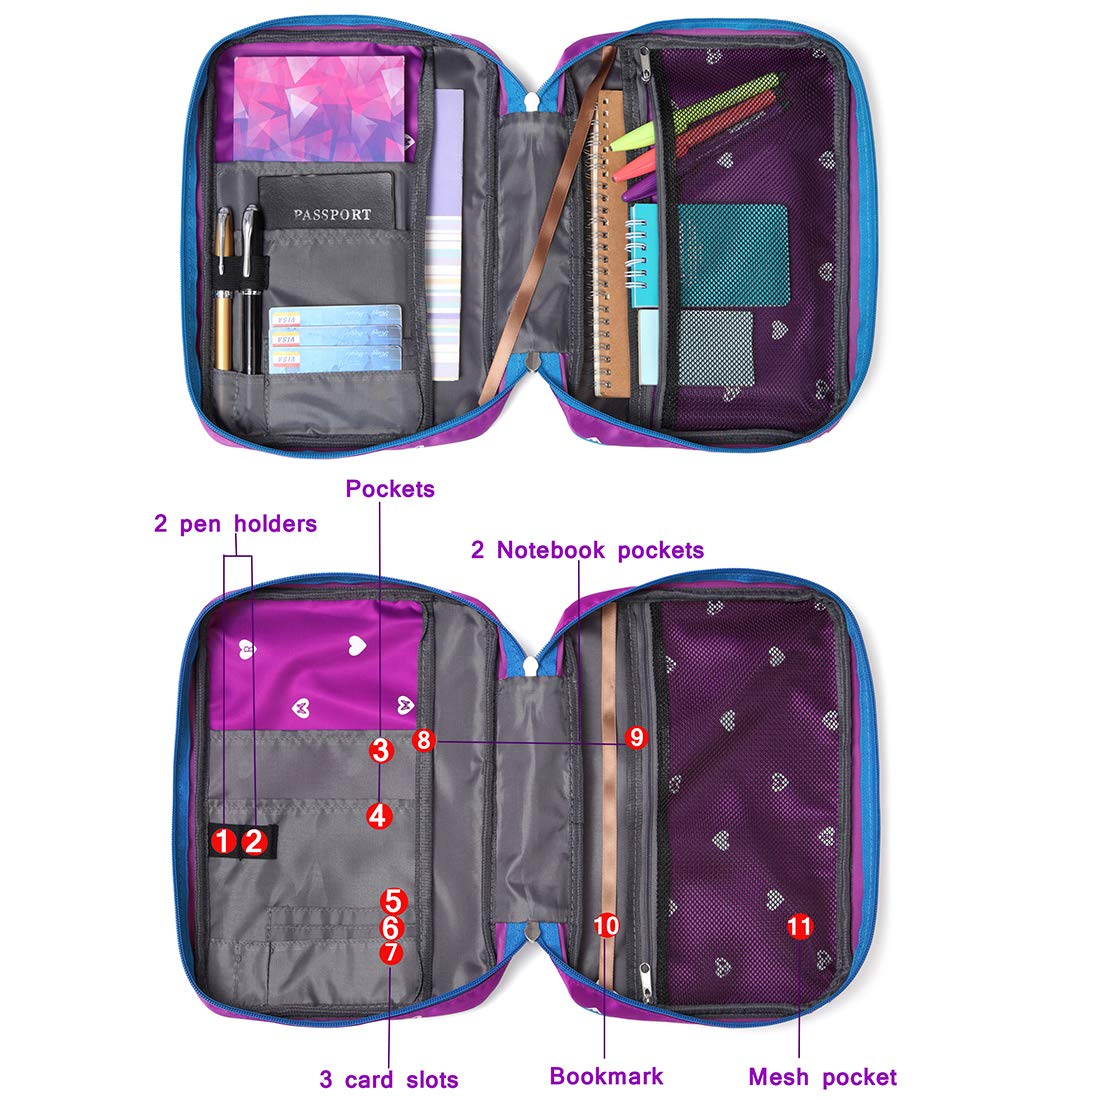 Kids Bible Covers for Girls Adventure Study Bible Carrying Case Carrier Purple Childrens Scripture Bag Good Holy Book Protector Catholic Lds Journal Storage Organizer Thinline Love with Pockets Zipper